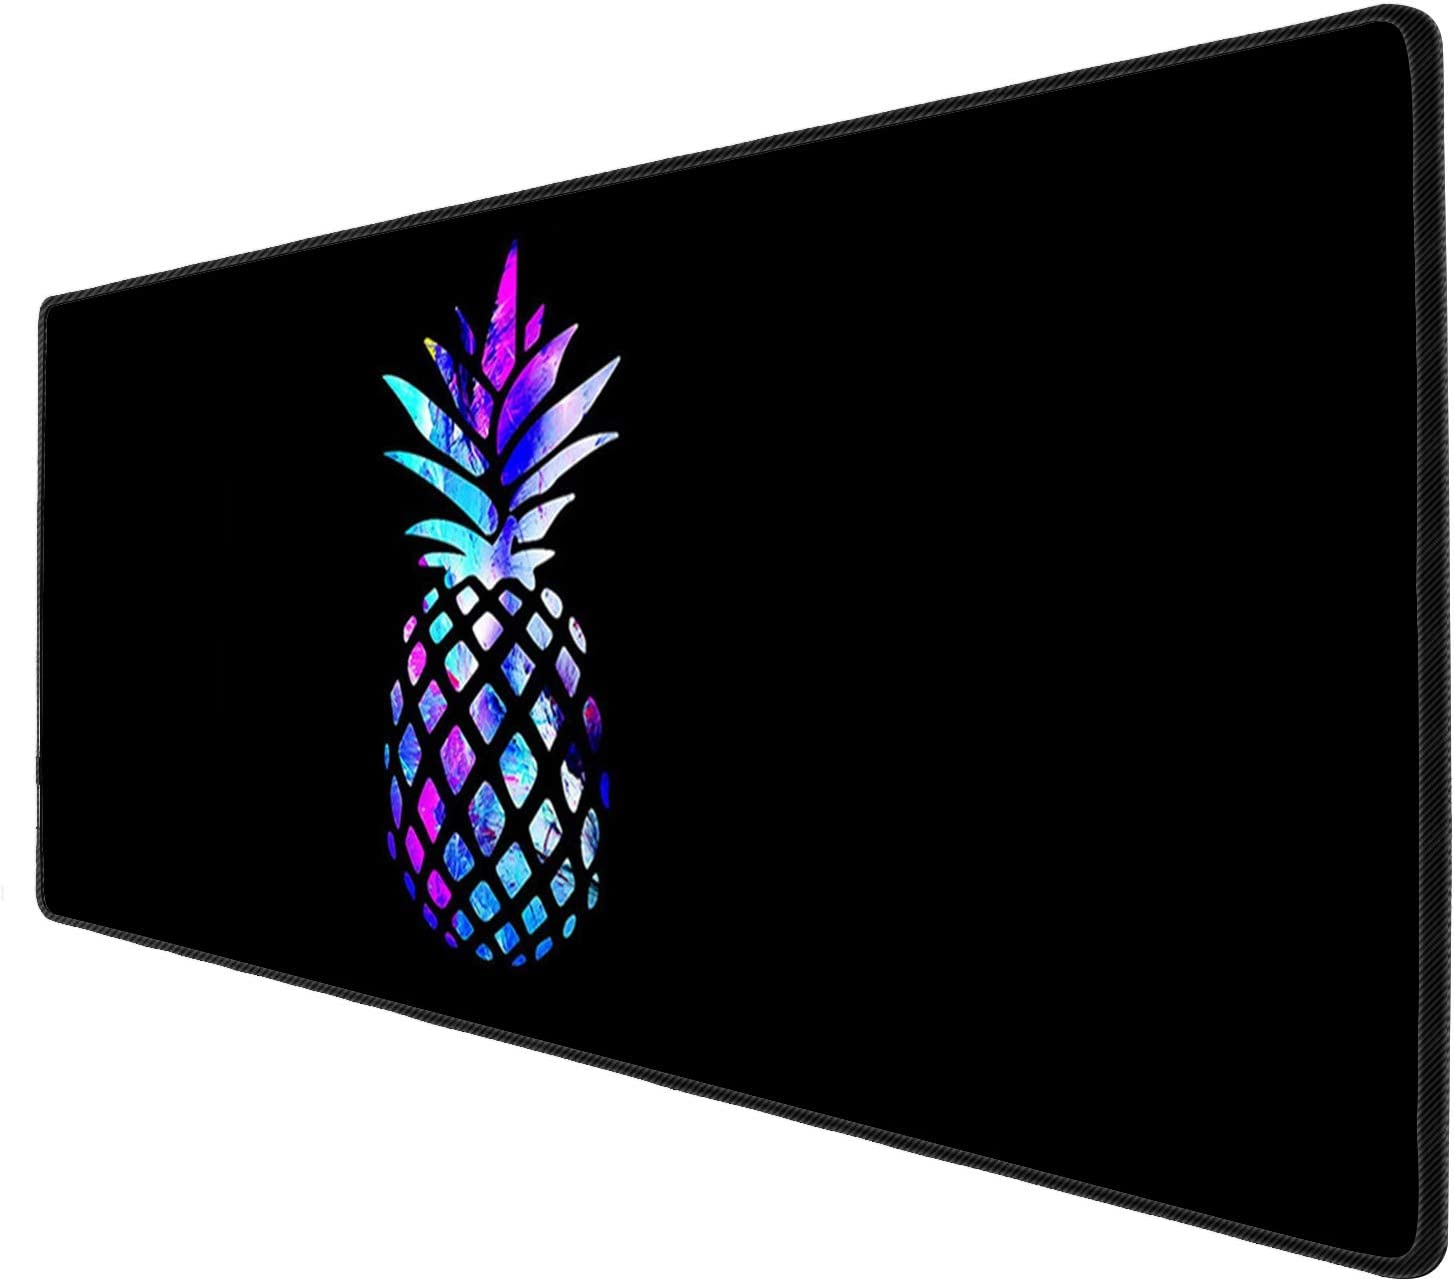 iNeworld Large Mouse Pad XXL Computer Game Mouse Mat Desk Pad Keyboard Mat Big Mouse Pad for Laptop Work & Gaming& Office & Home (31.5×11.8×0.15 inch)-Shiny Pineapple